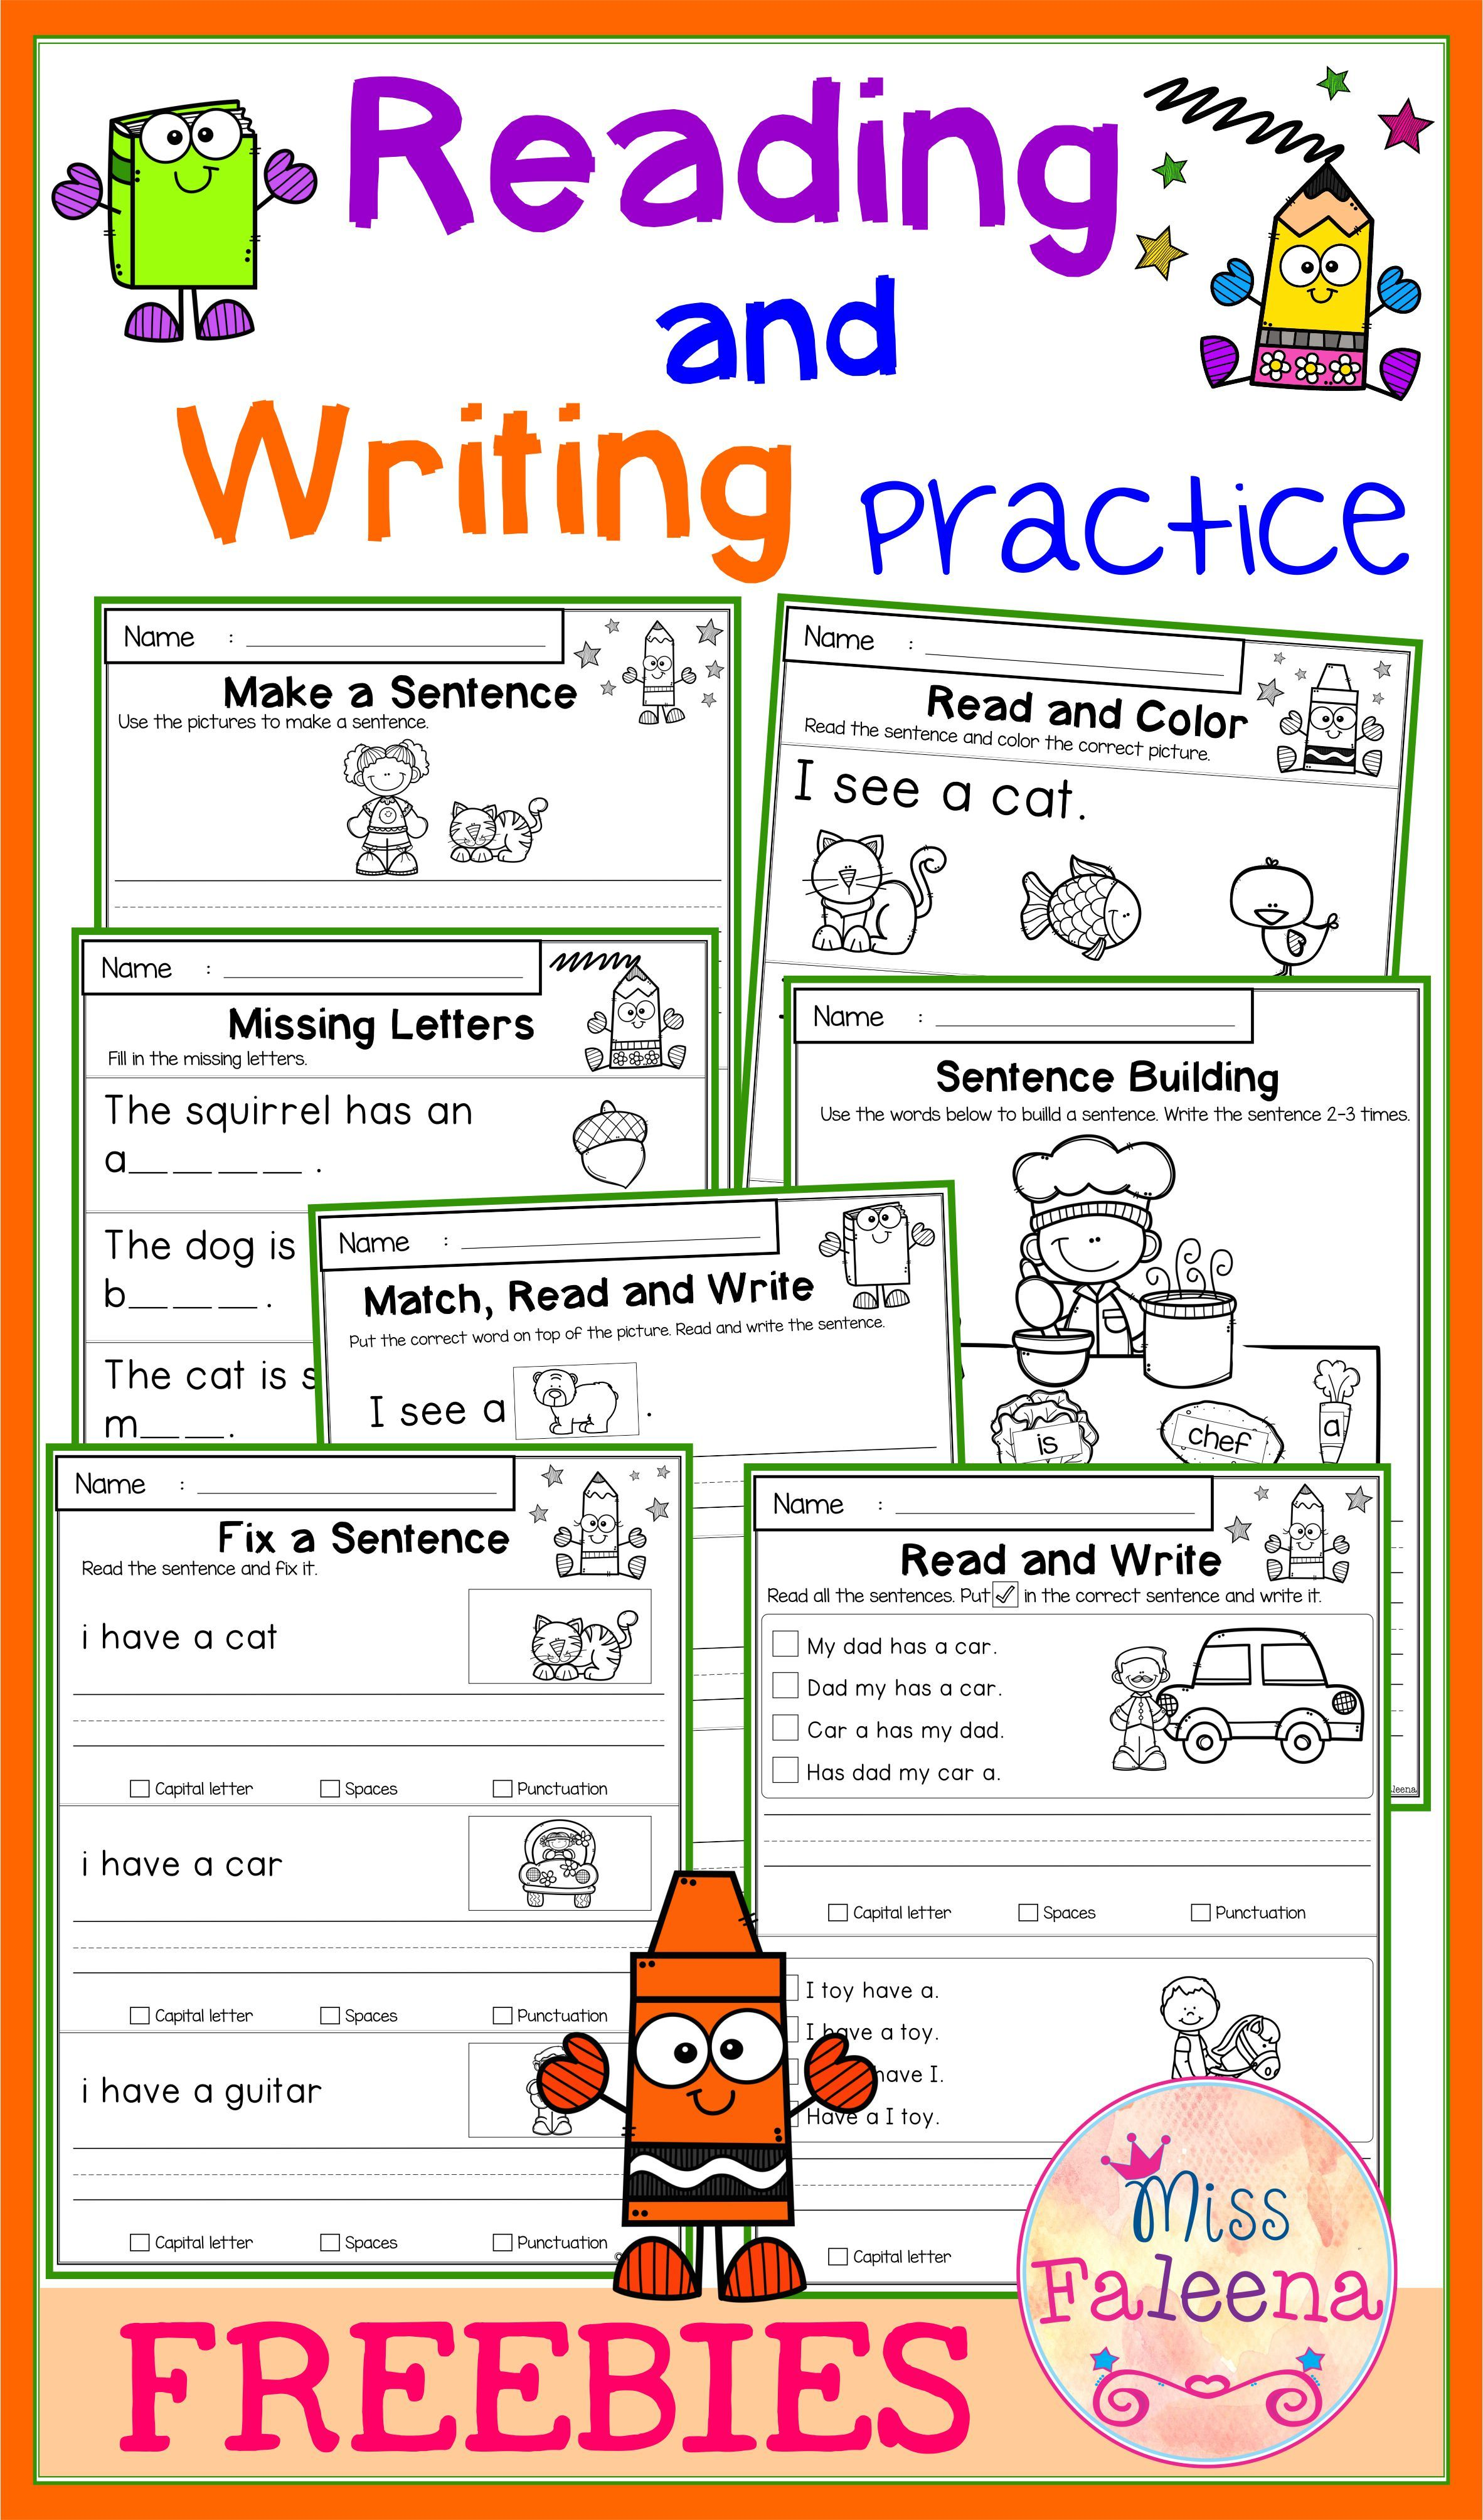 Free Reading And Writing Practice With Images